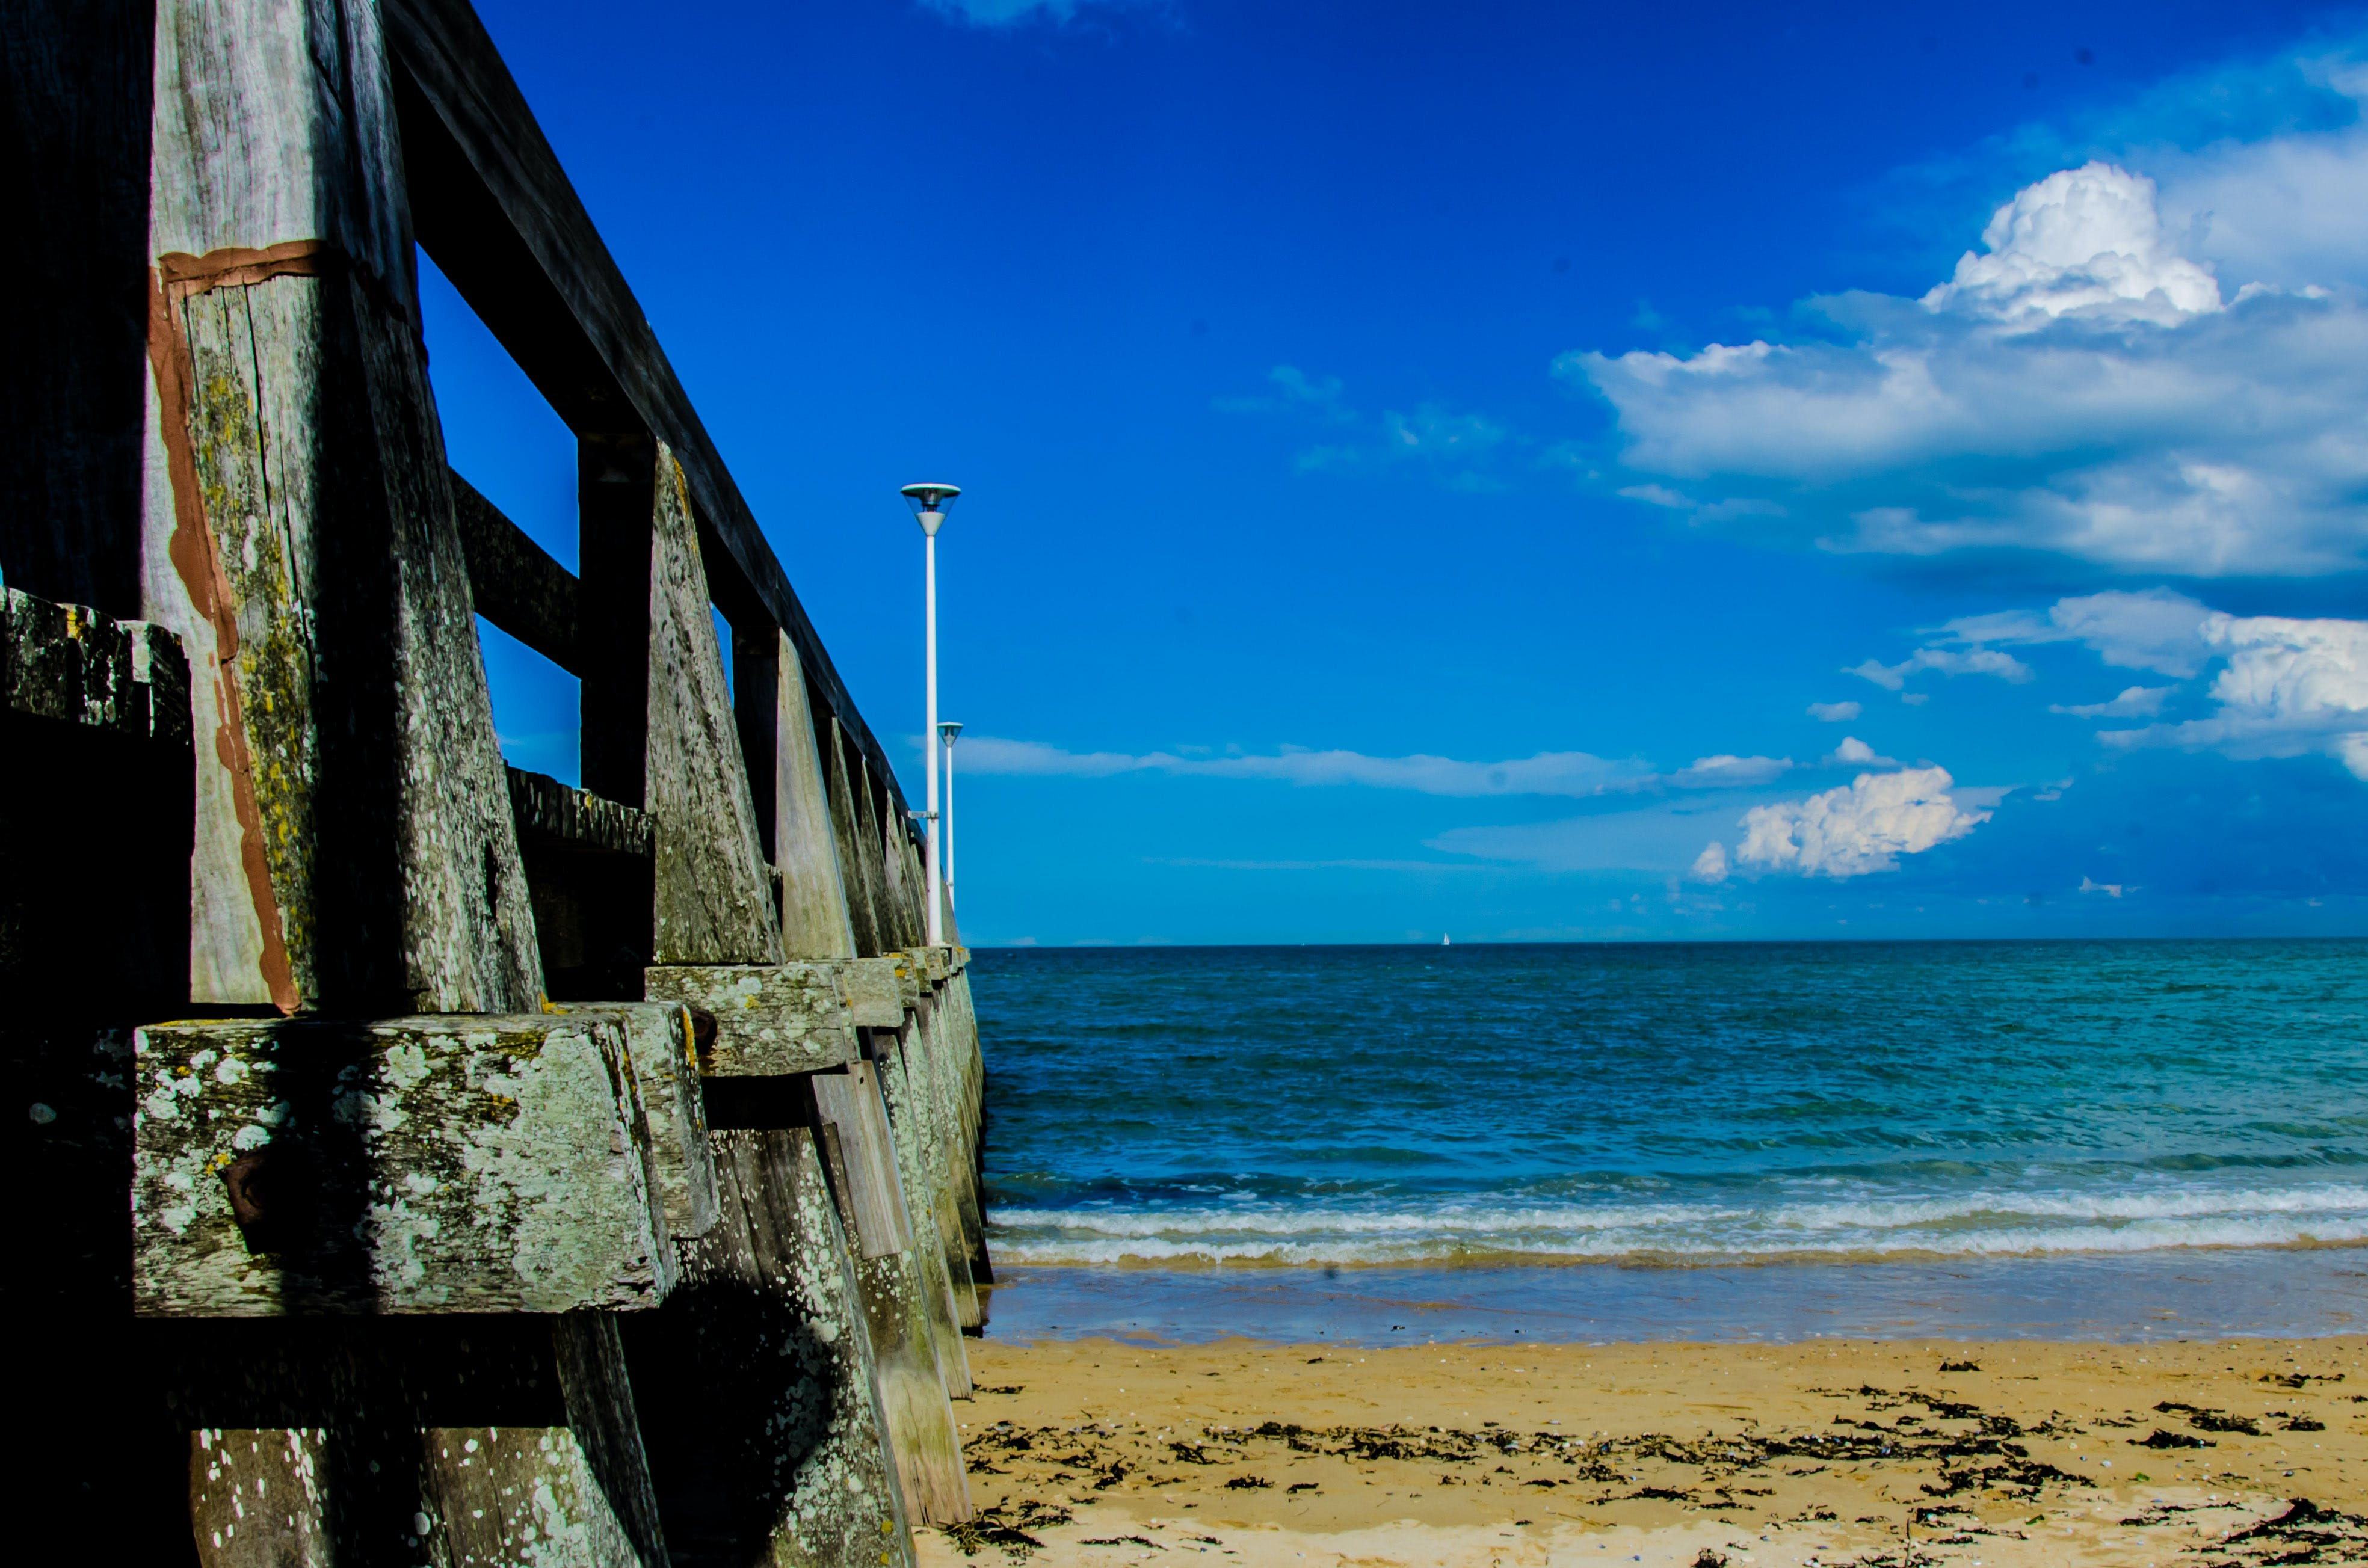 Brown Wooden Bar Near Sea Shore Under Blue Sky during Day Time